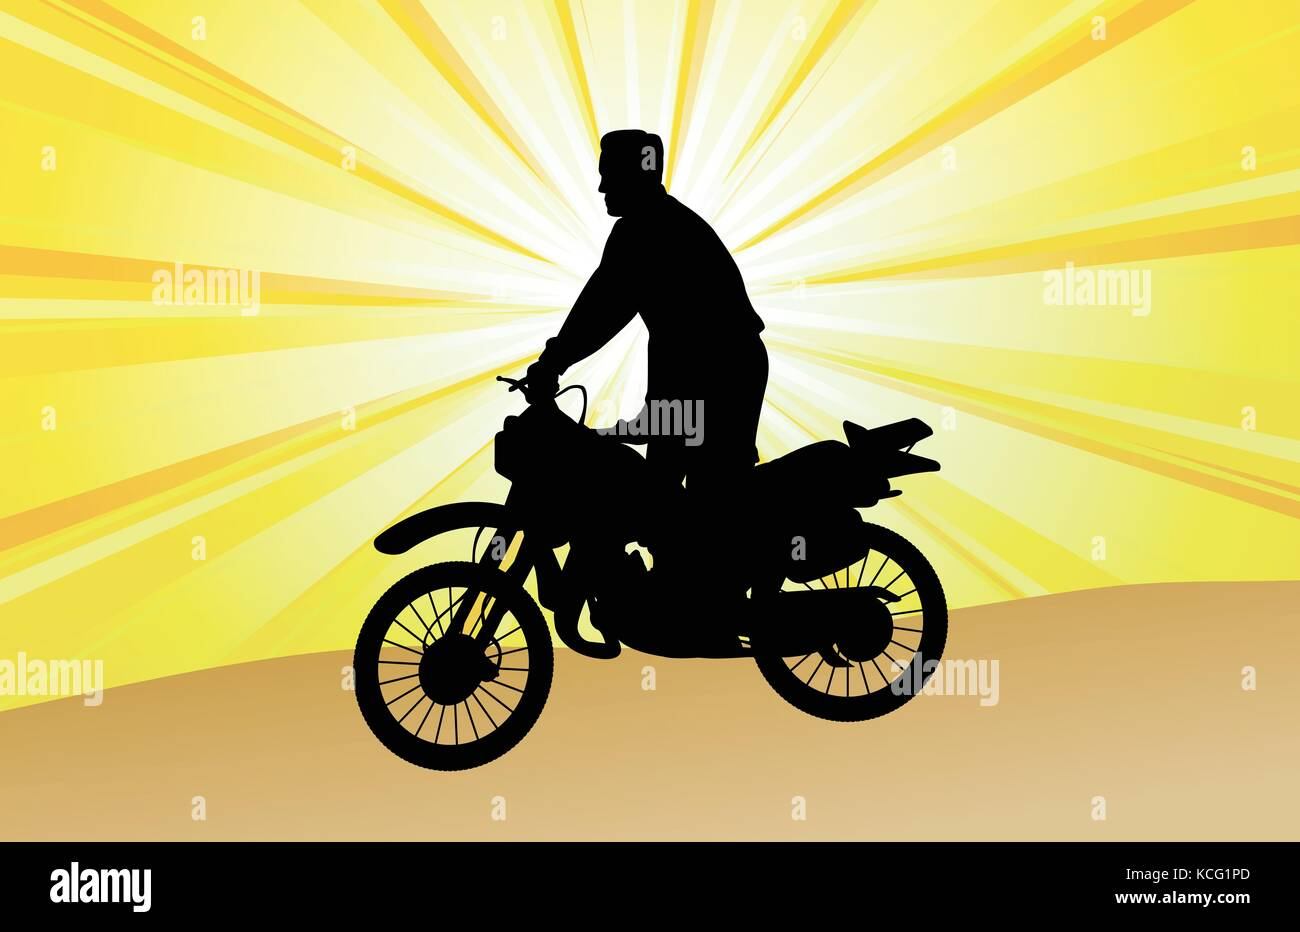 Motocross Stock Vector Images - Alamy